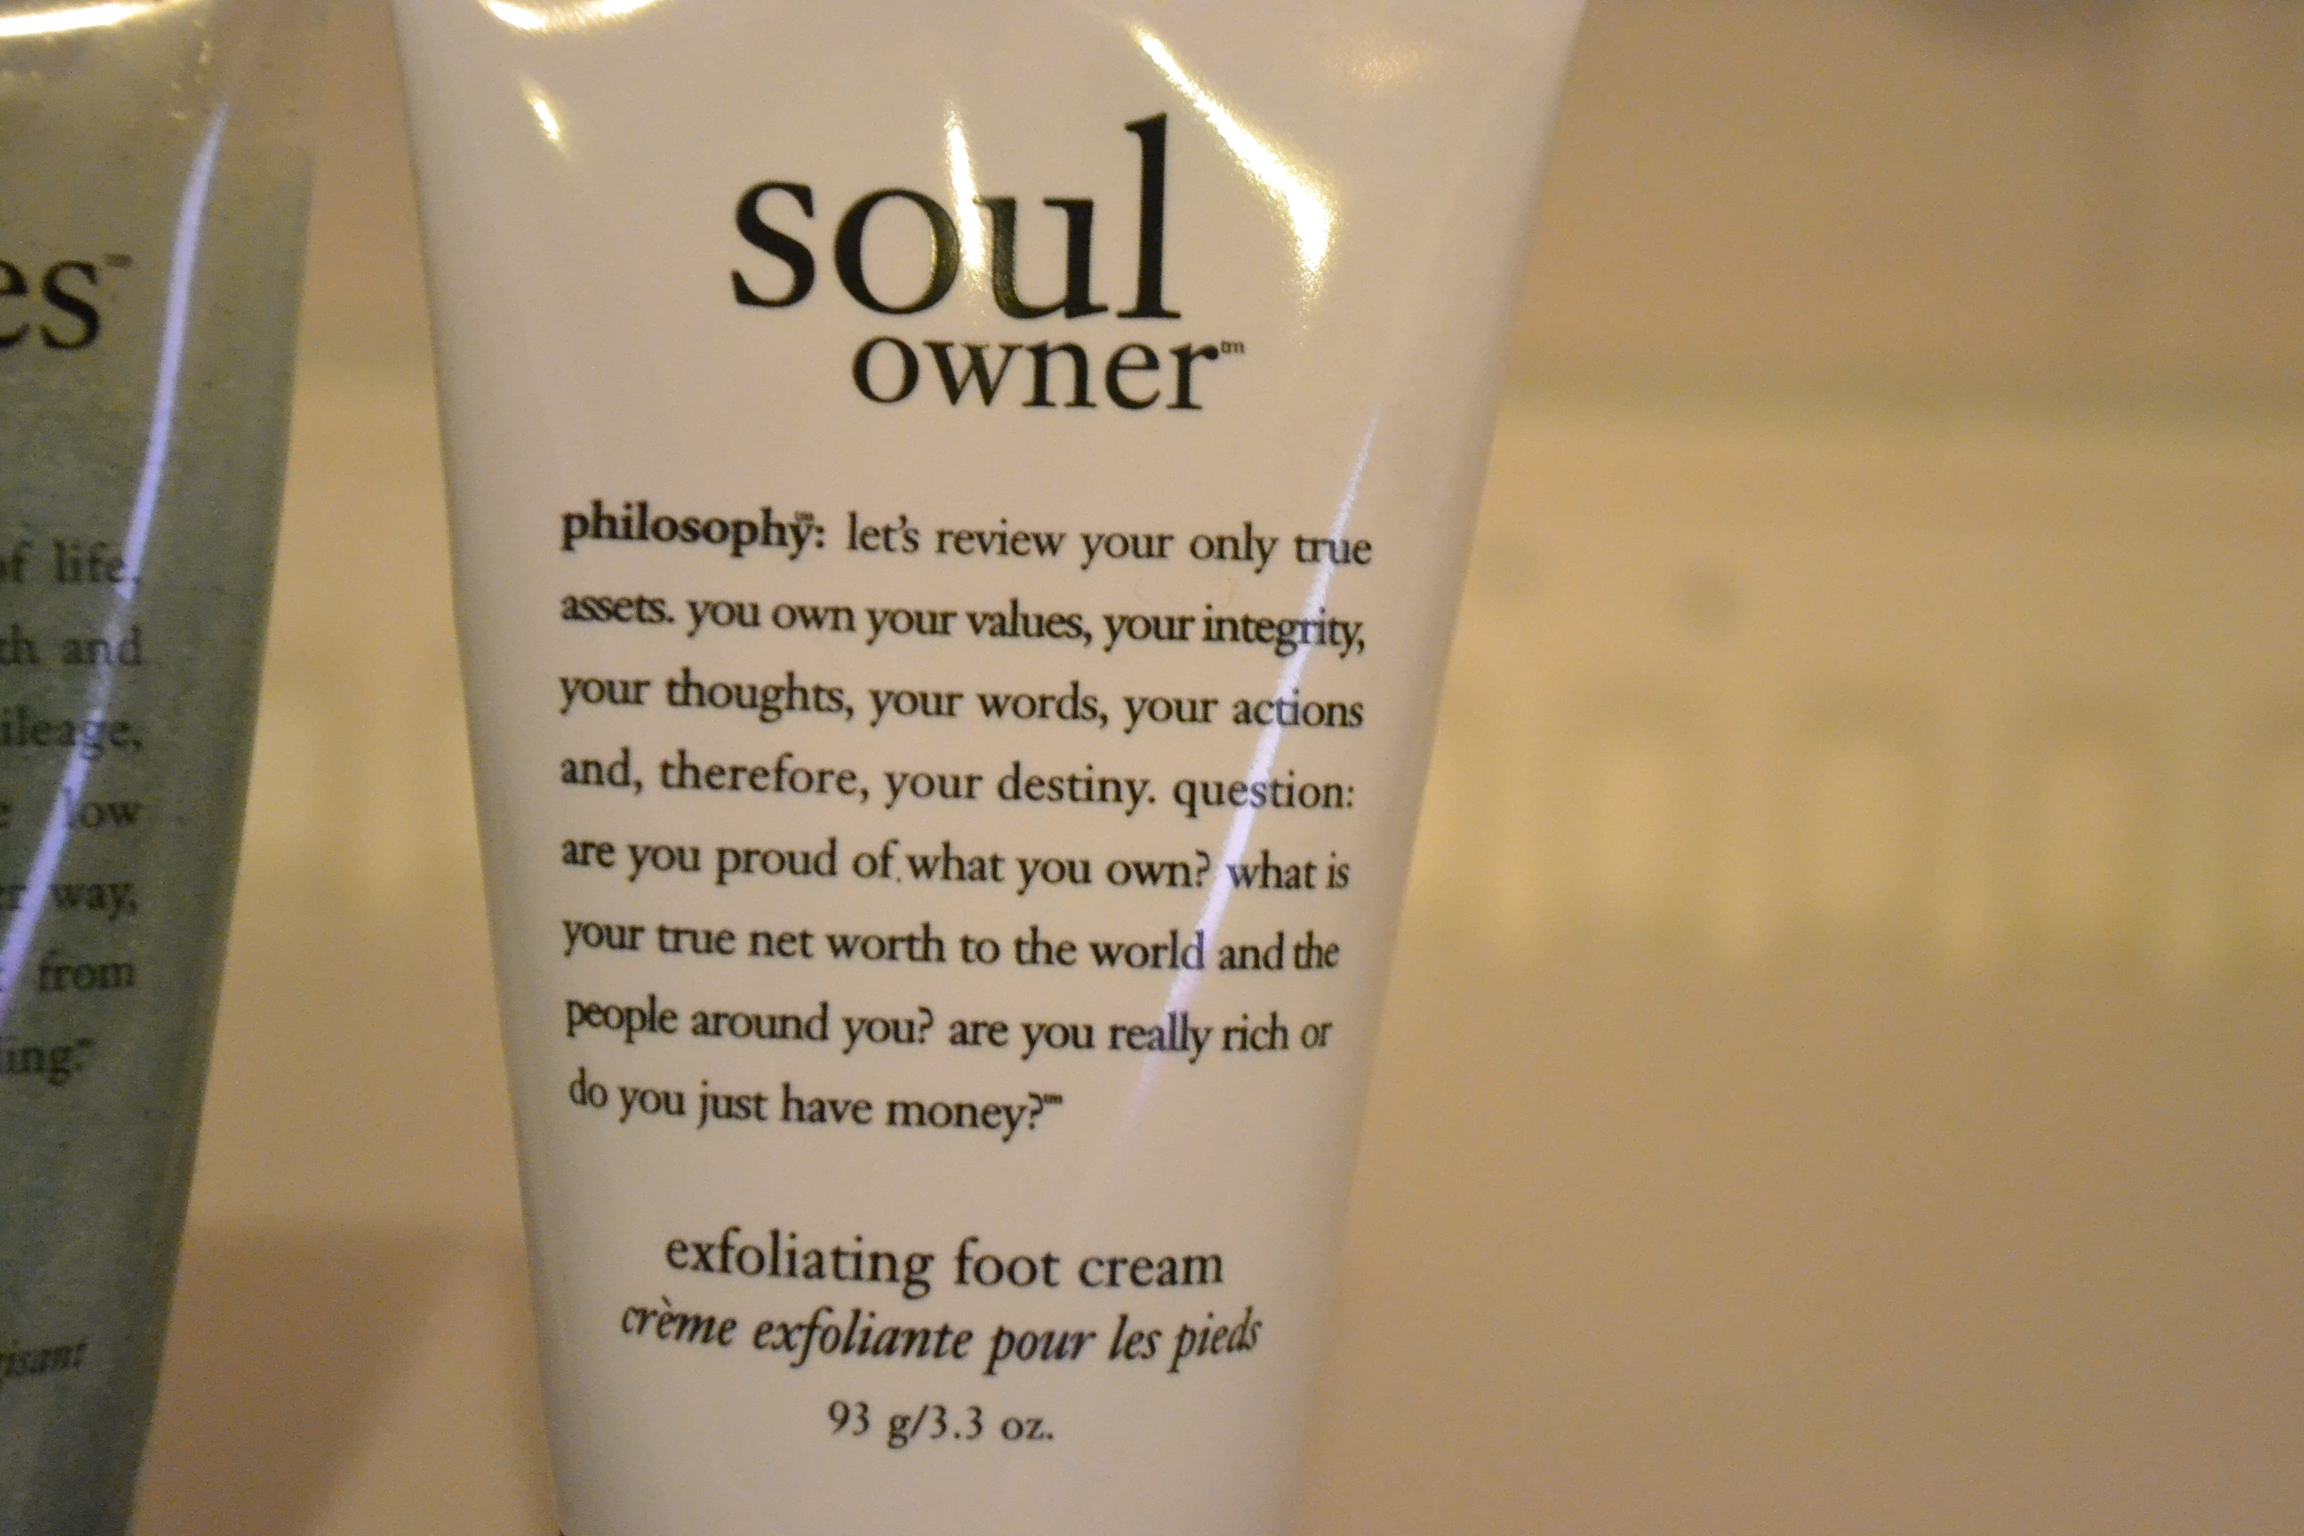 daisybutter - UK Style and Fashion Blog: review, philosophy, soul owner, footnotes, diy pamper night